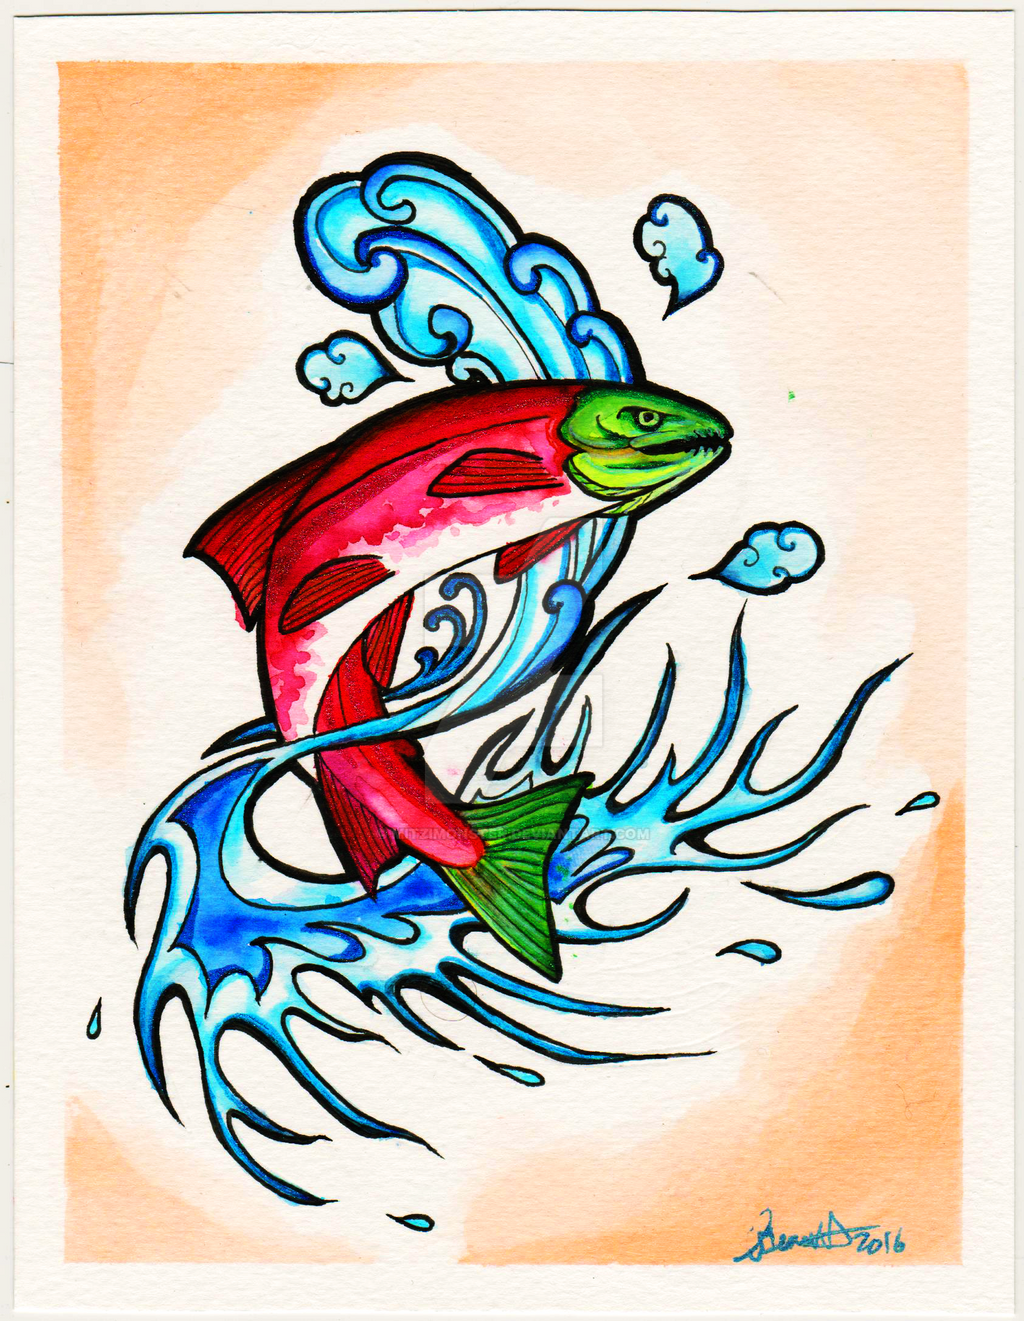 Alaskan sockeye salmon tattoo by mitzimonster on deviantart for Alaska tattoo shops